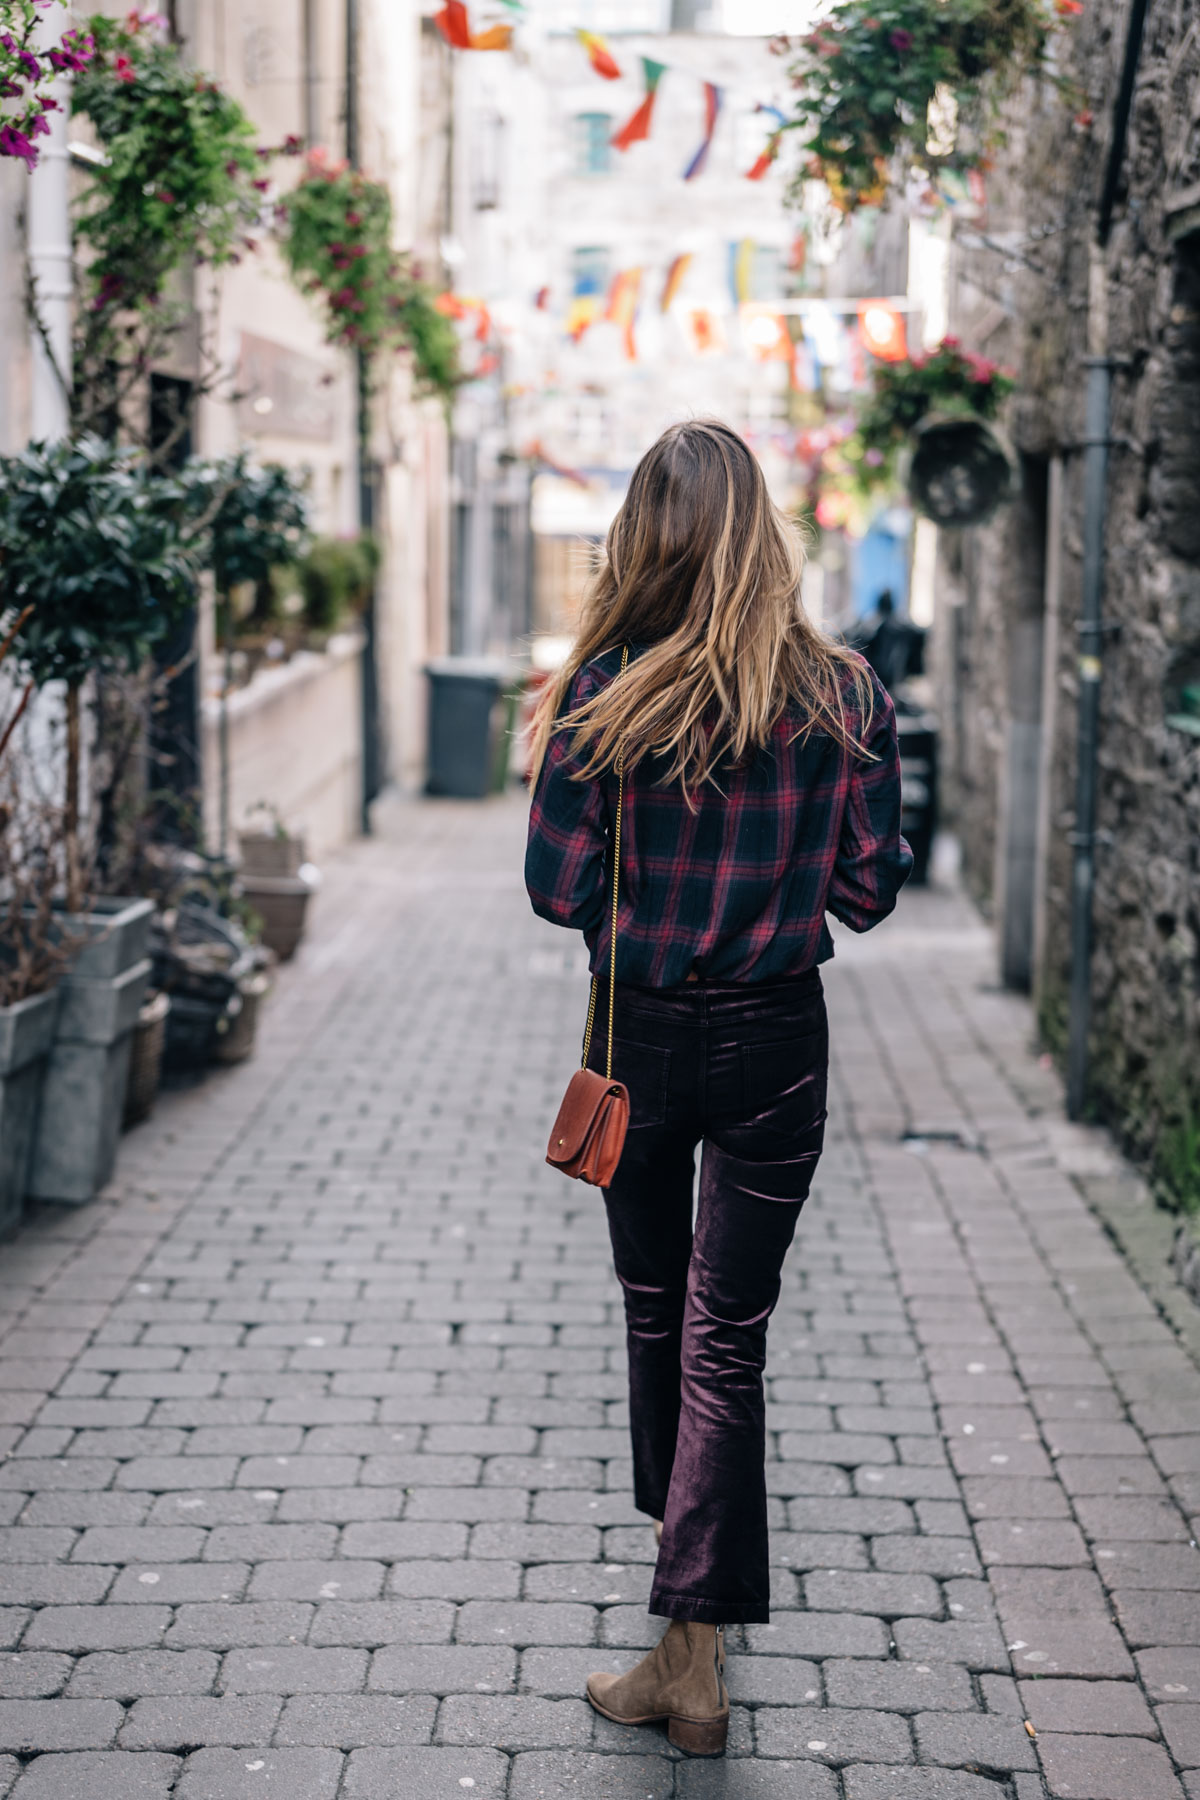 Jess Ann Kirby explores Galway, Ireland in Paige Denim Velvet Cropped Flare pants and Plaid Button Down